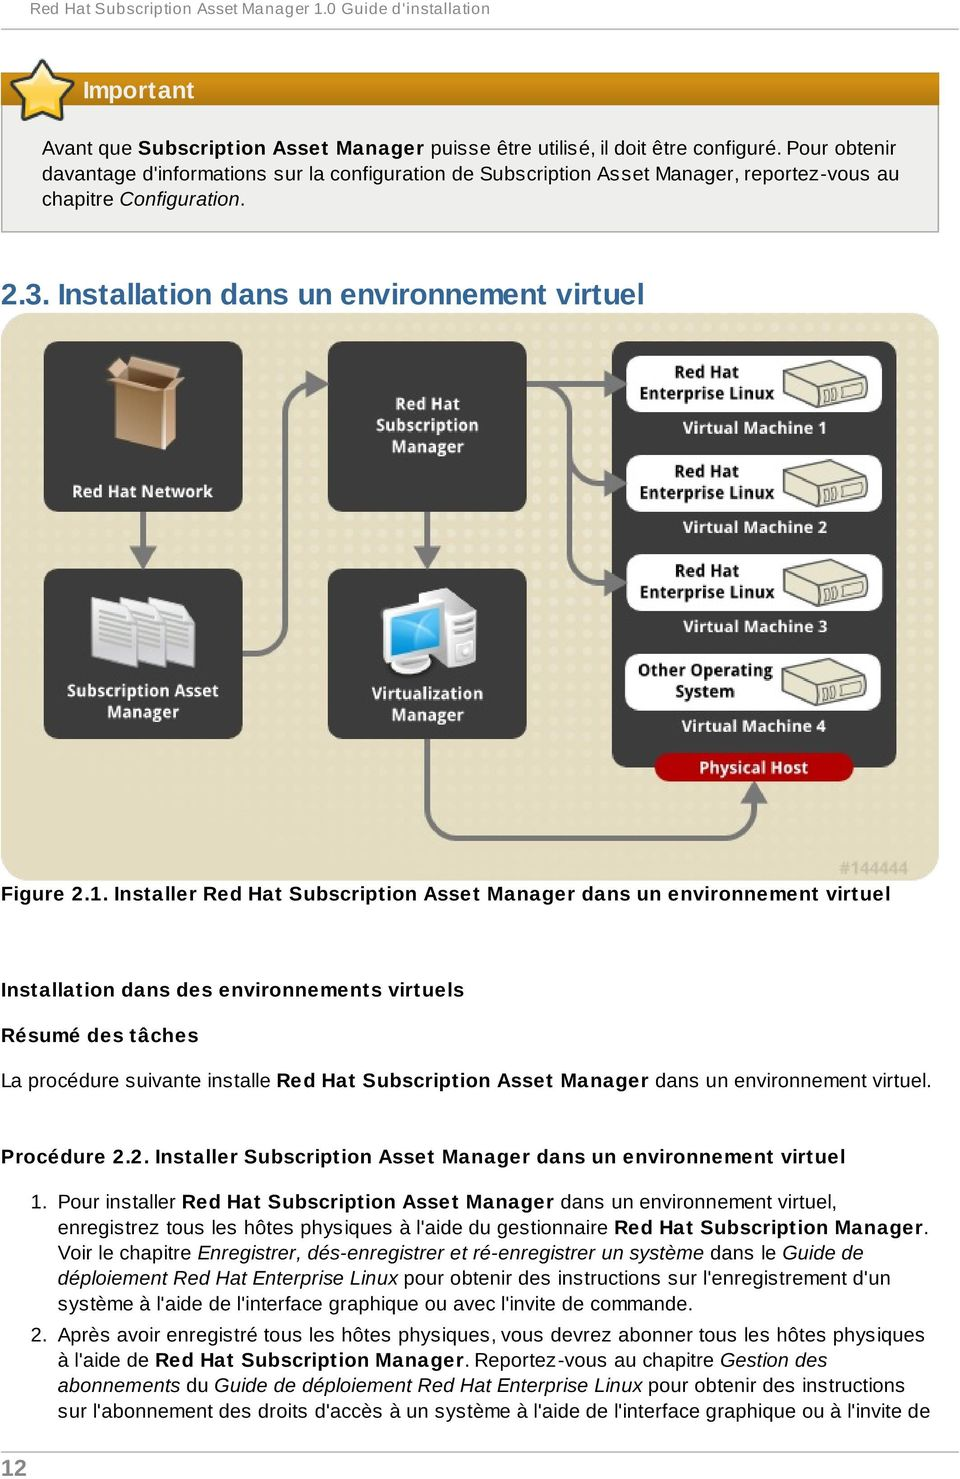 Installer Red Hat Subscription Asset Manager dans un environnement virtuel Installation dans des environnements virtuels La procédure suivante installe Red Hat Subscription Asset Manager dans un